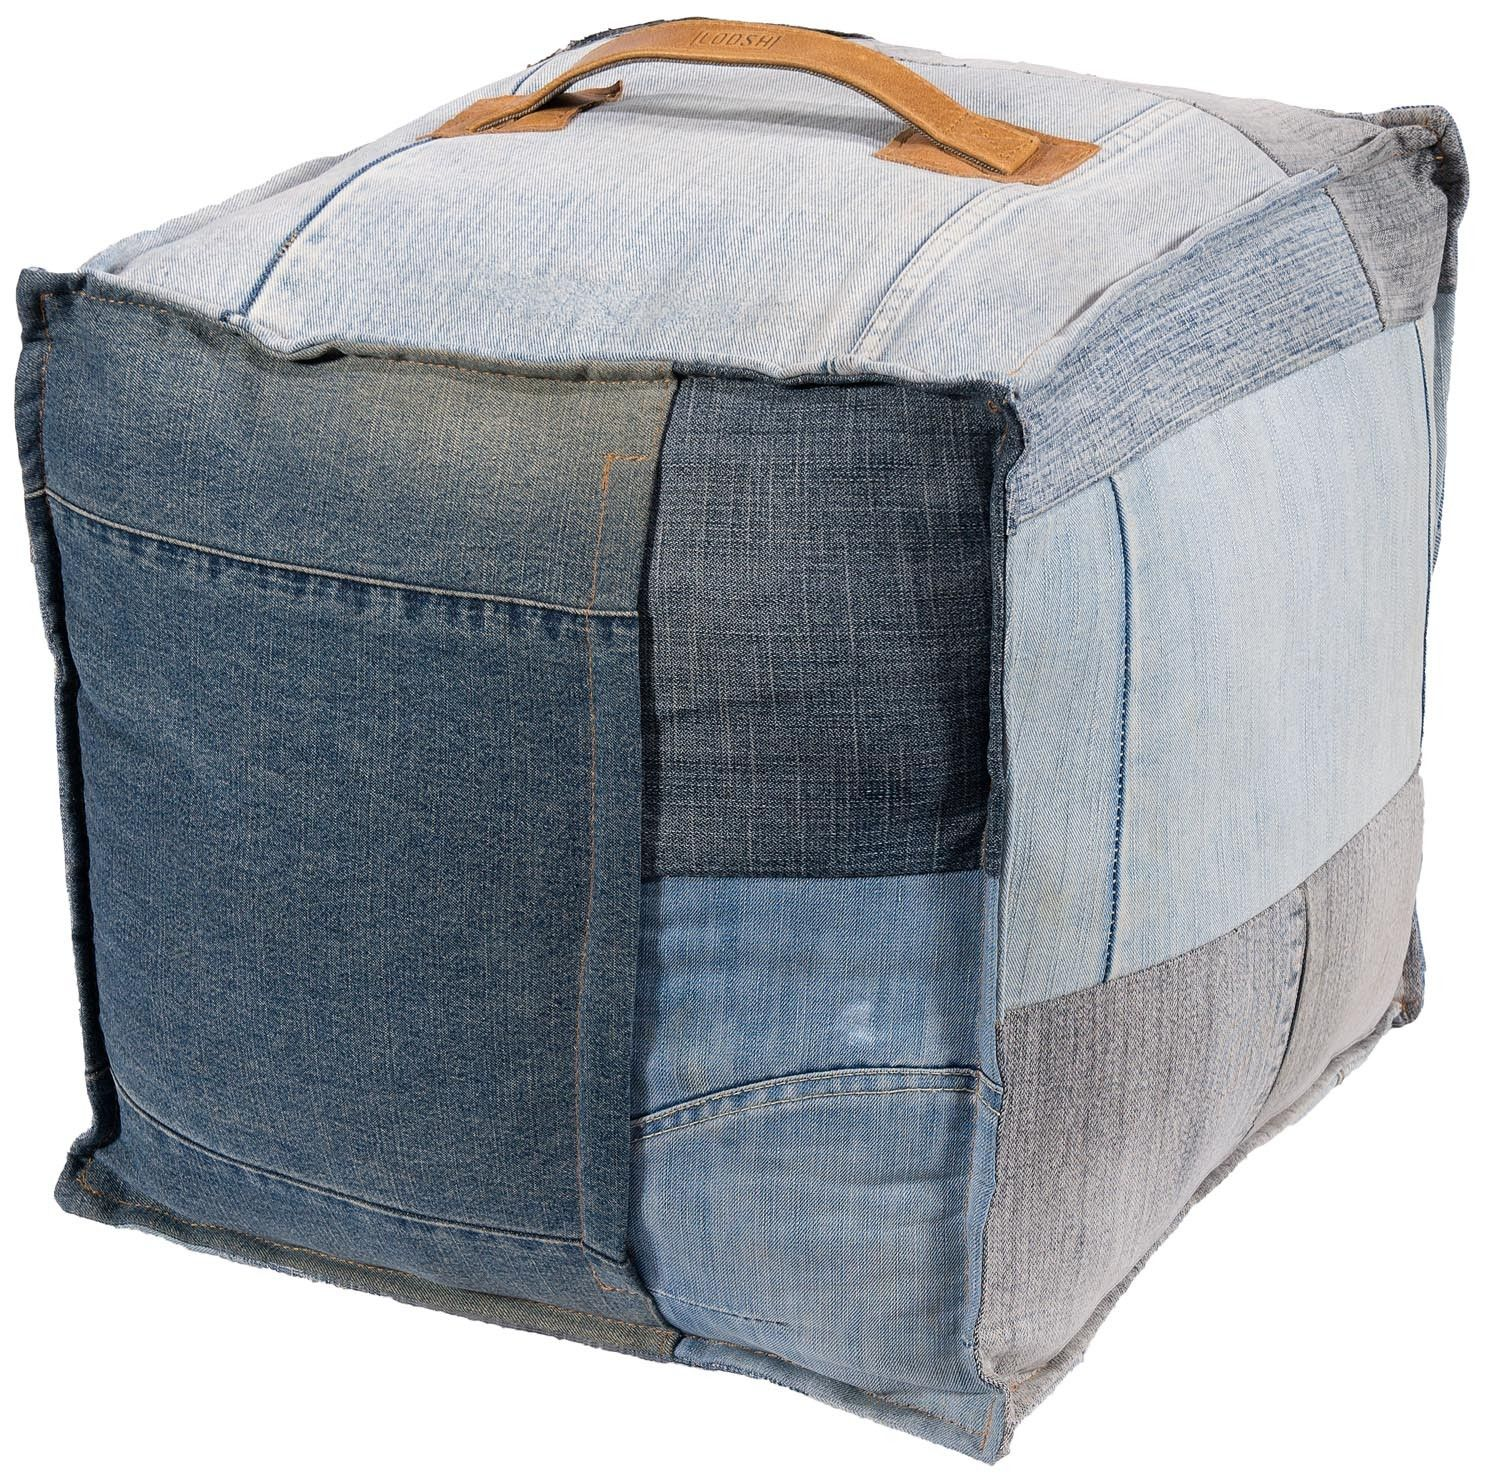 RECYCLED DENIM POUF/POEF  Start collecting Thor's jeans now :p